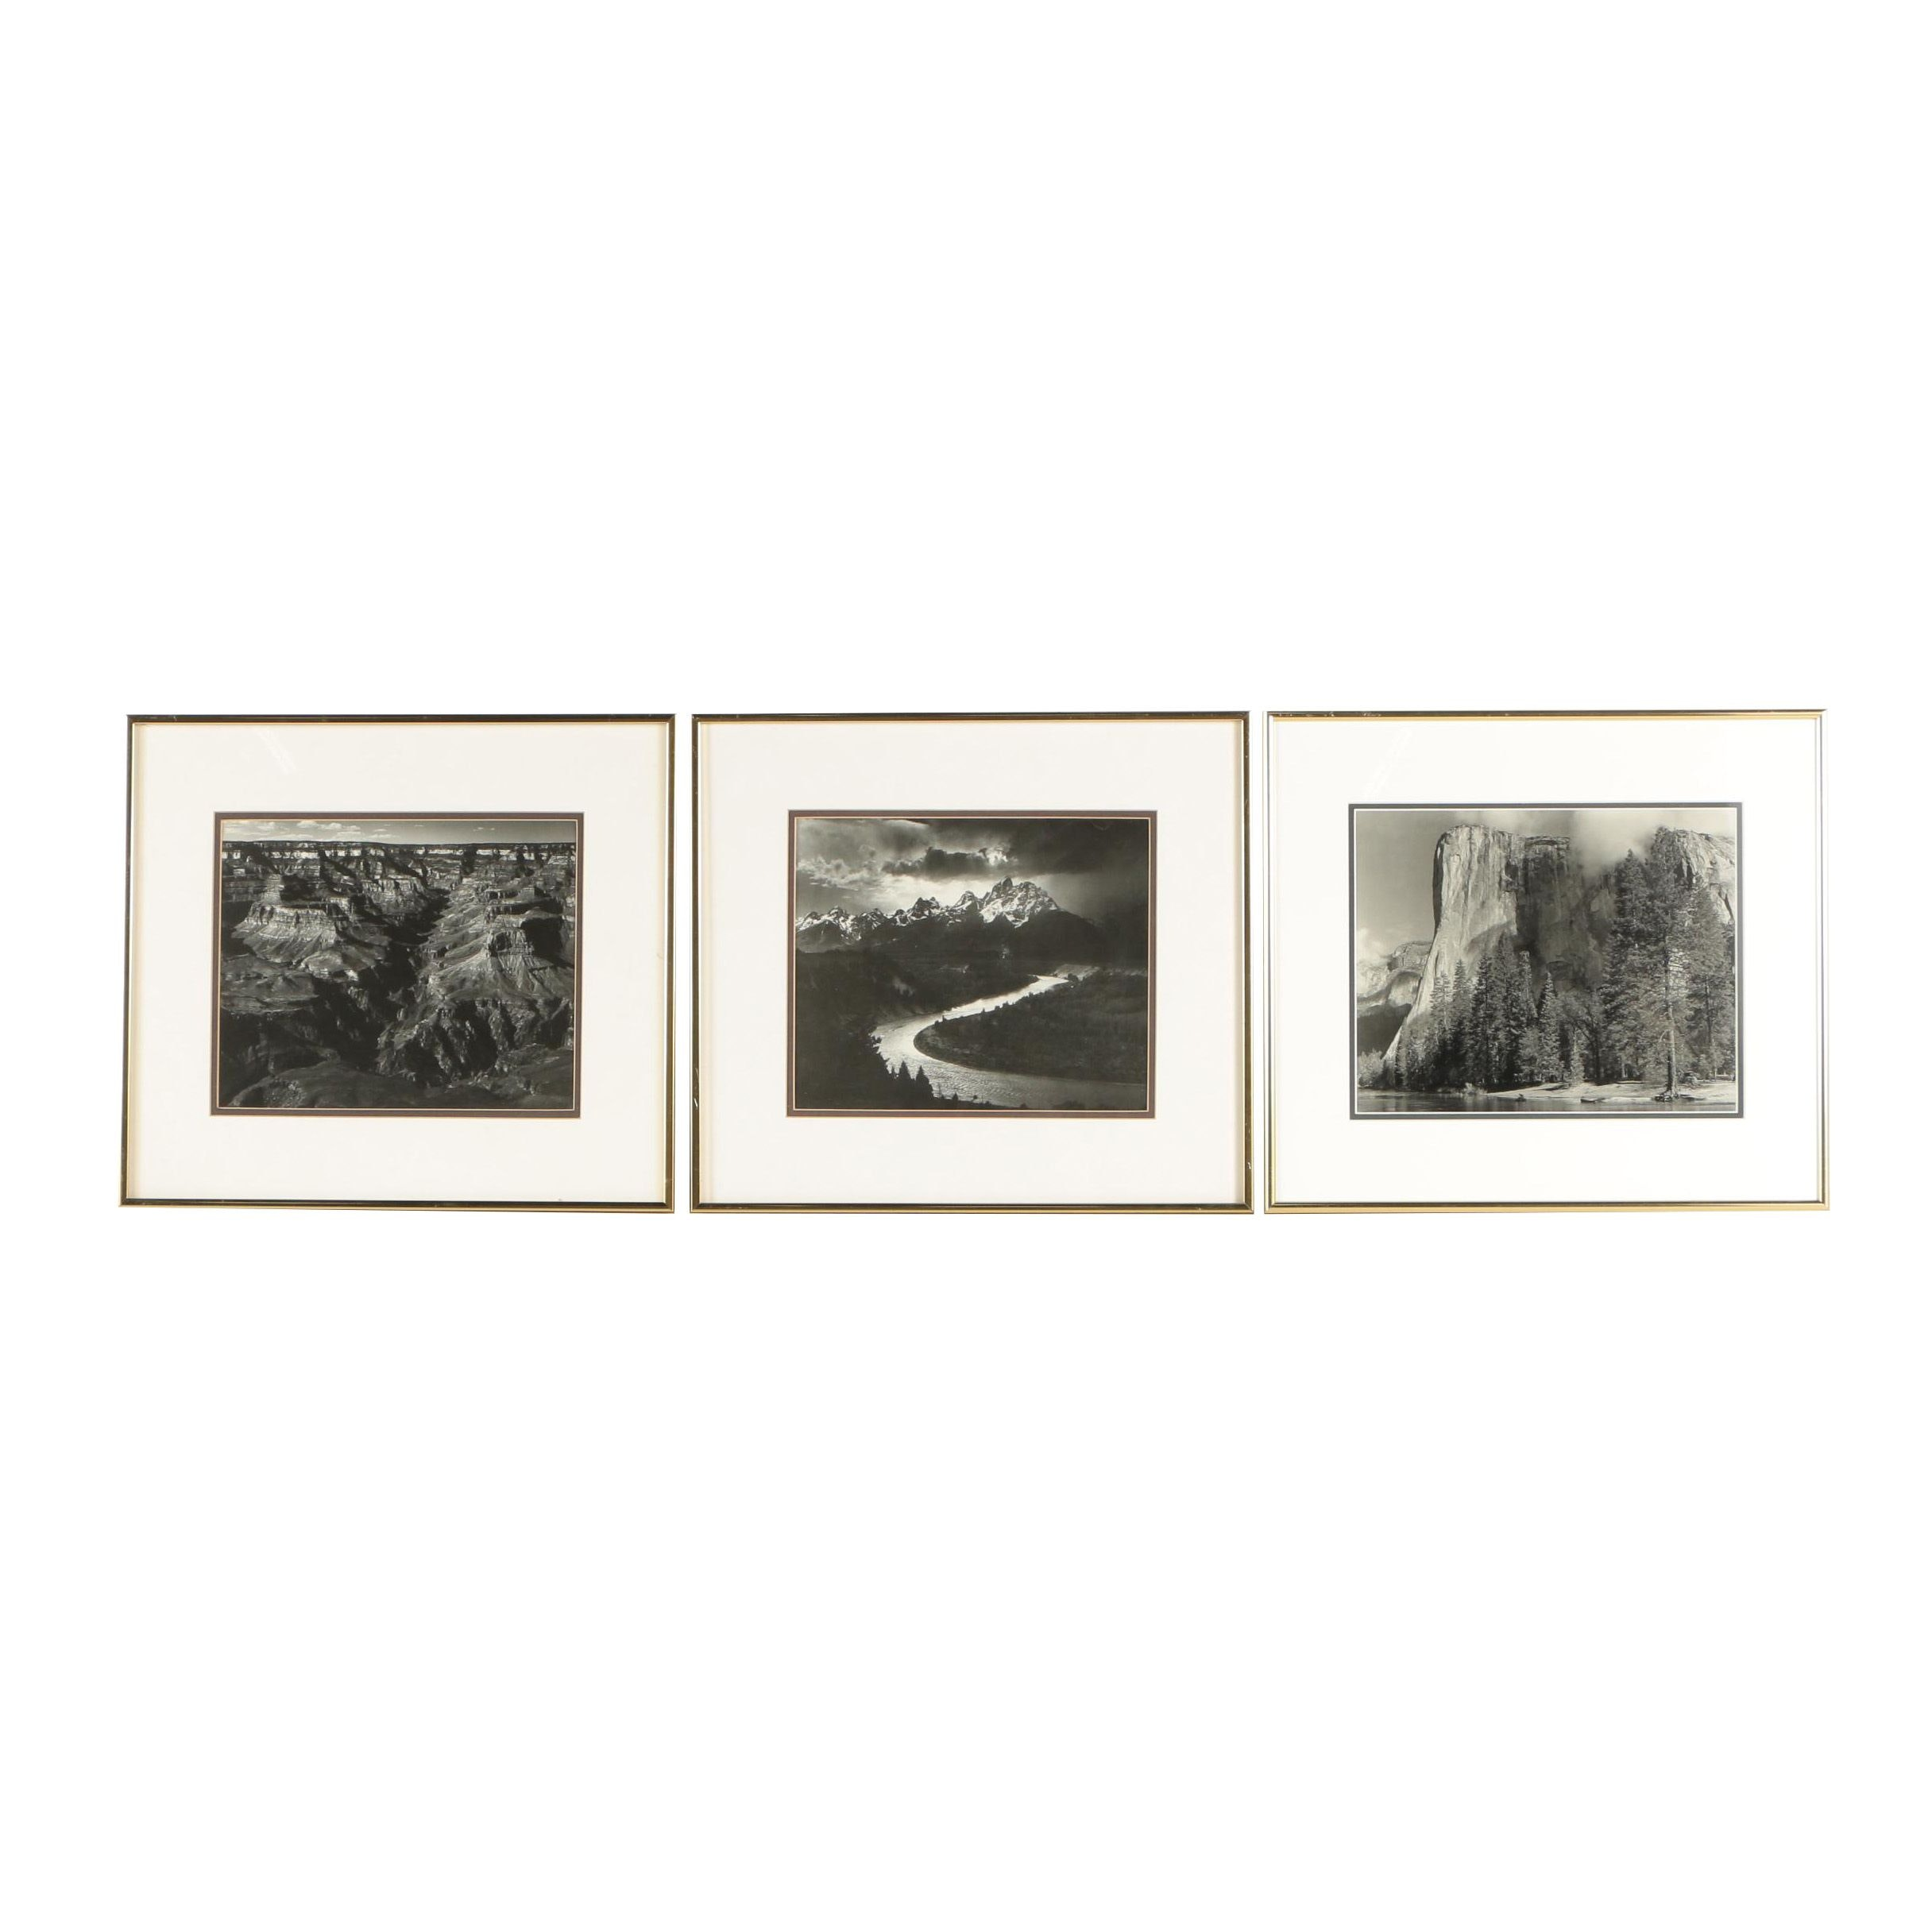 Offset Lithographs after Ansel Adams Photographs